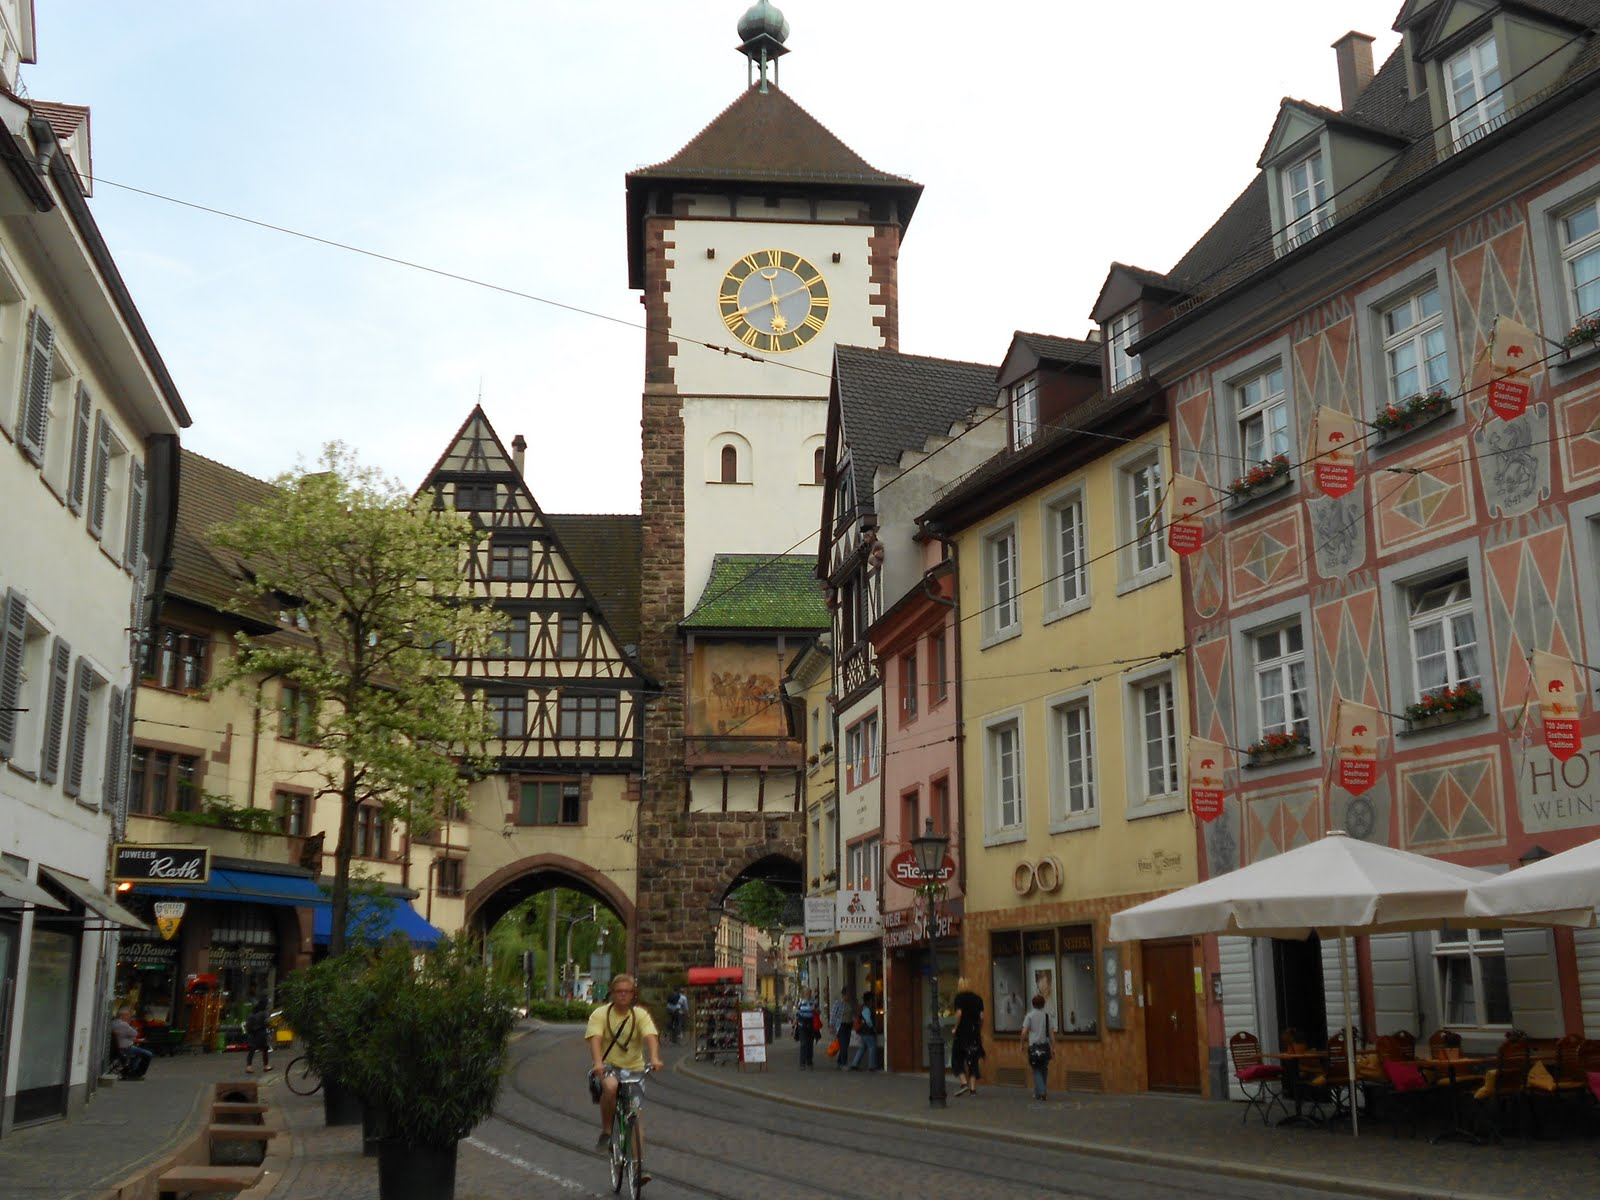 Mulhouse France  city pictures gallery : Clouston Sisters Do Europe: Mulhouse France, Freiburg Germany, and ...